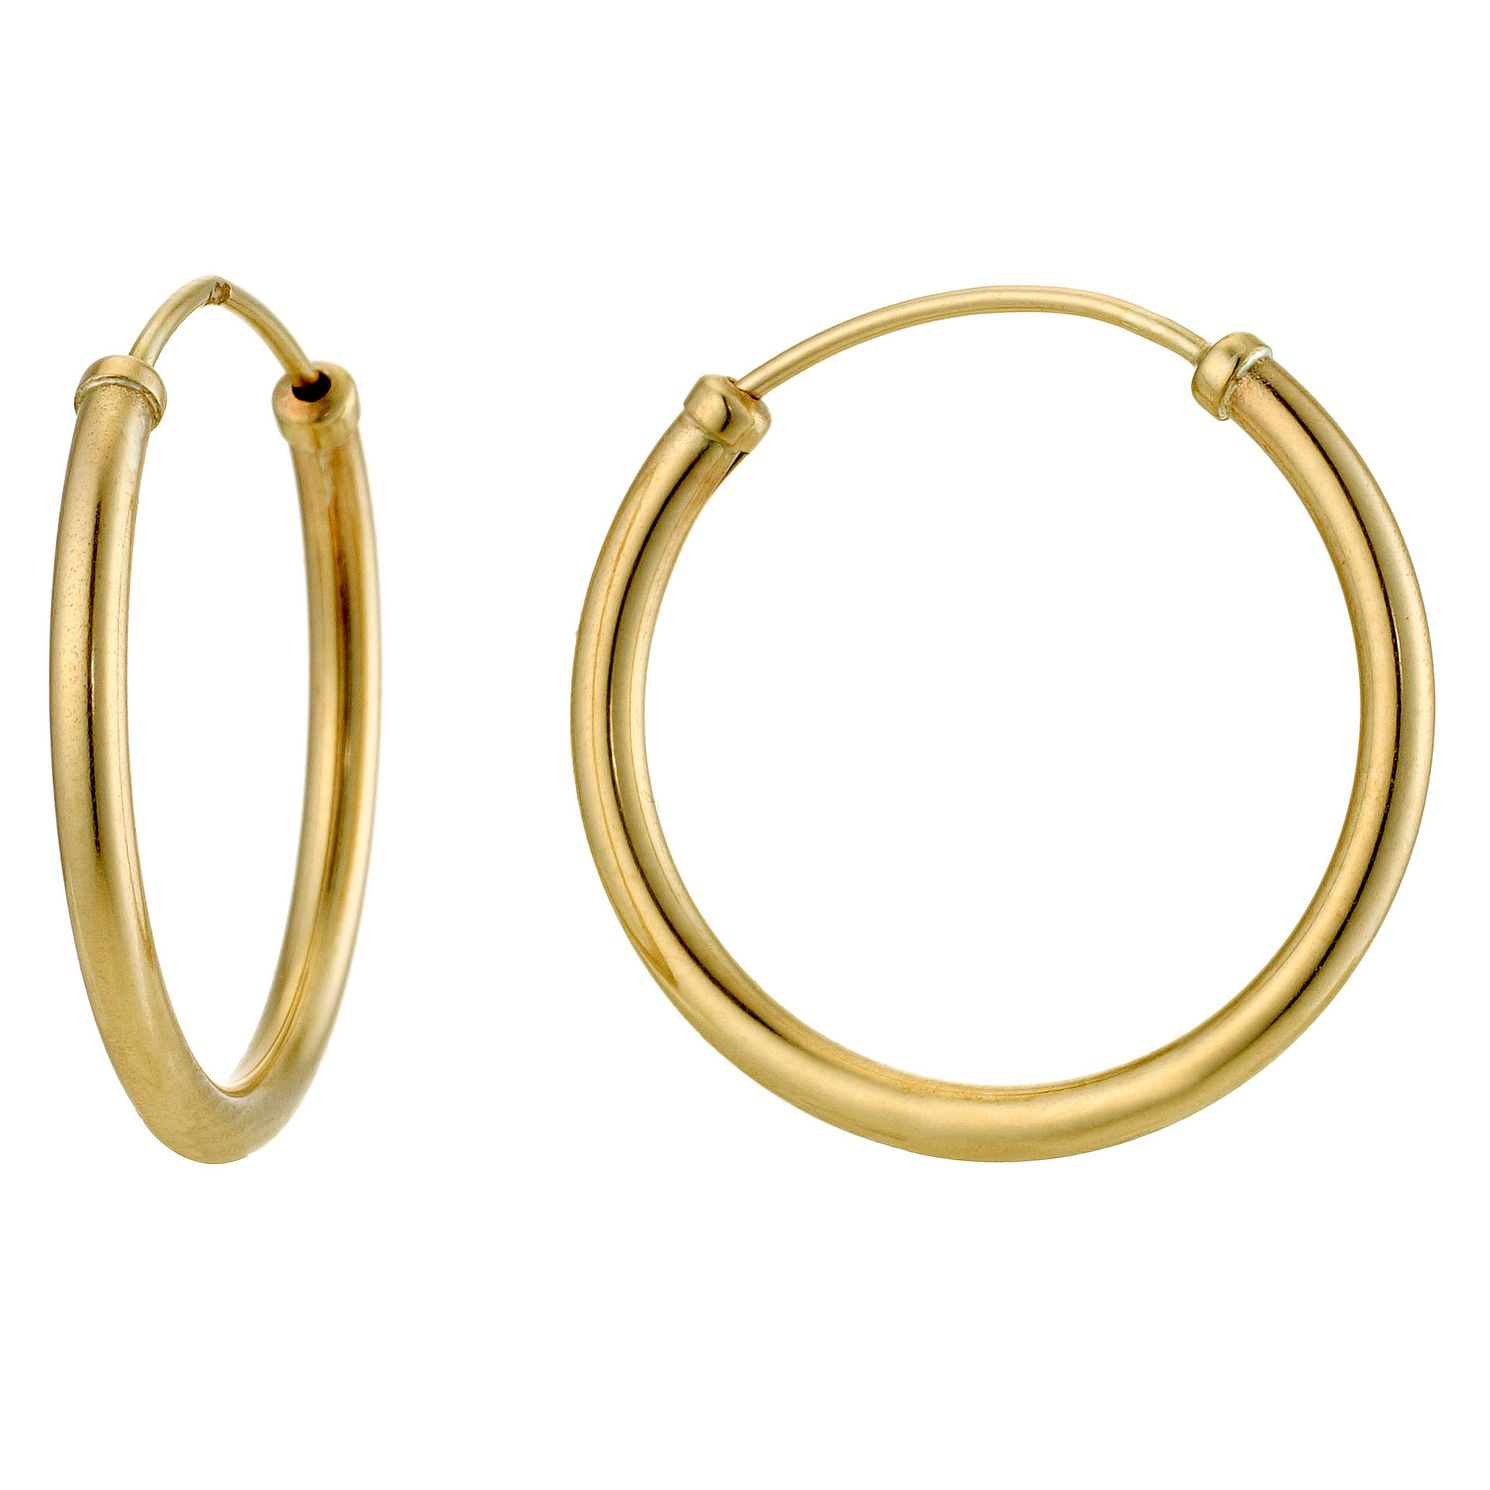 9ct Yellow Gold 15mm Sleeper Earrings - Product number 8959749